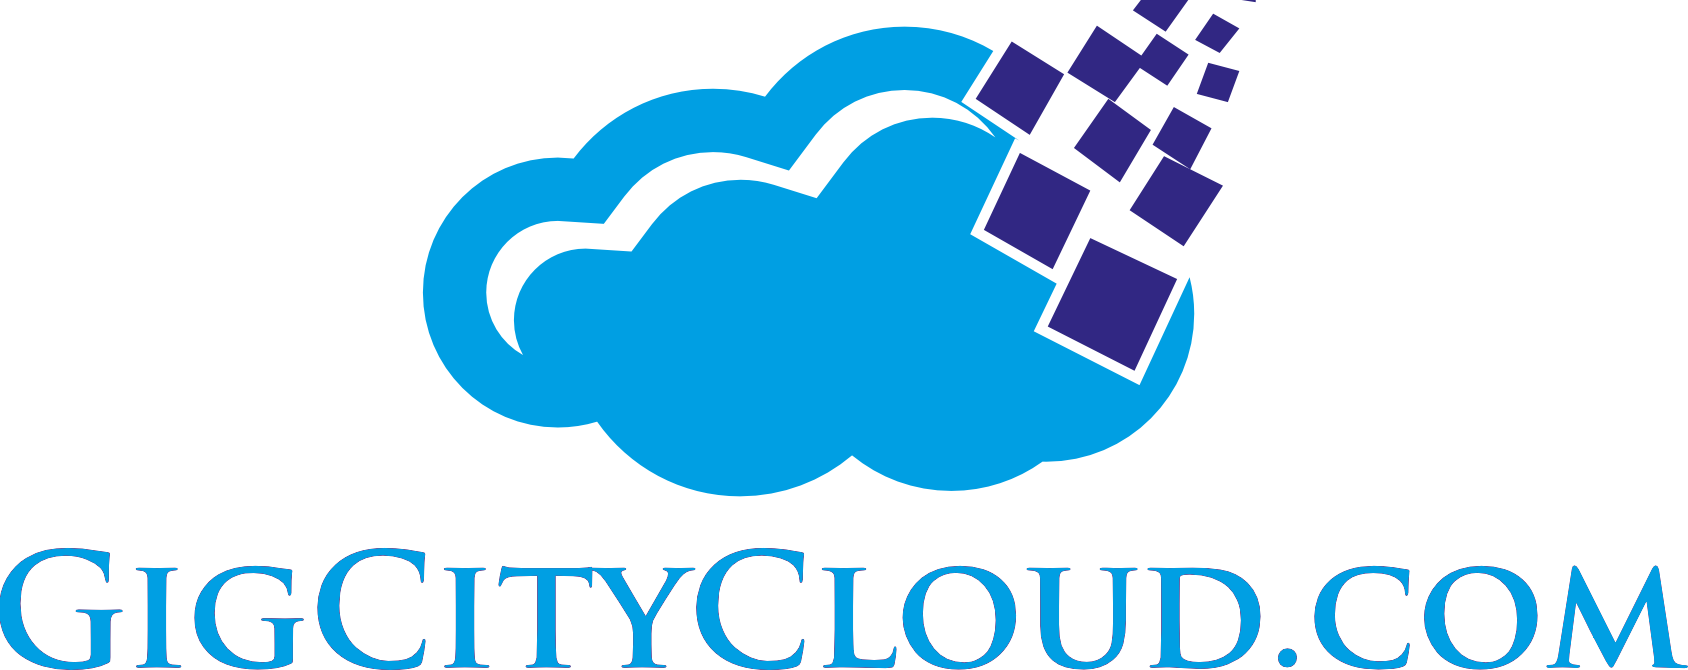 GigCity.Cloud